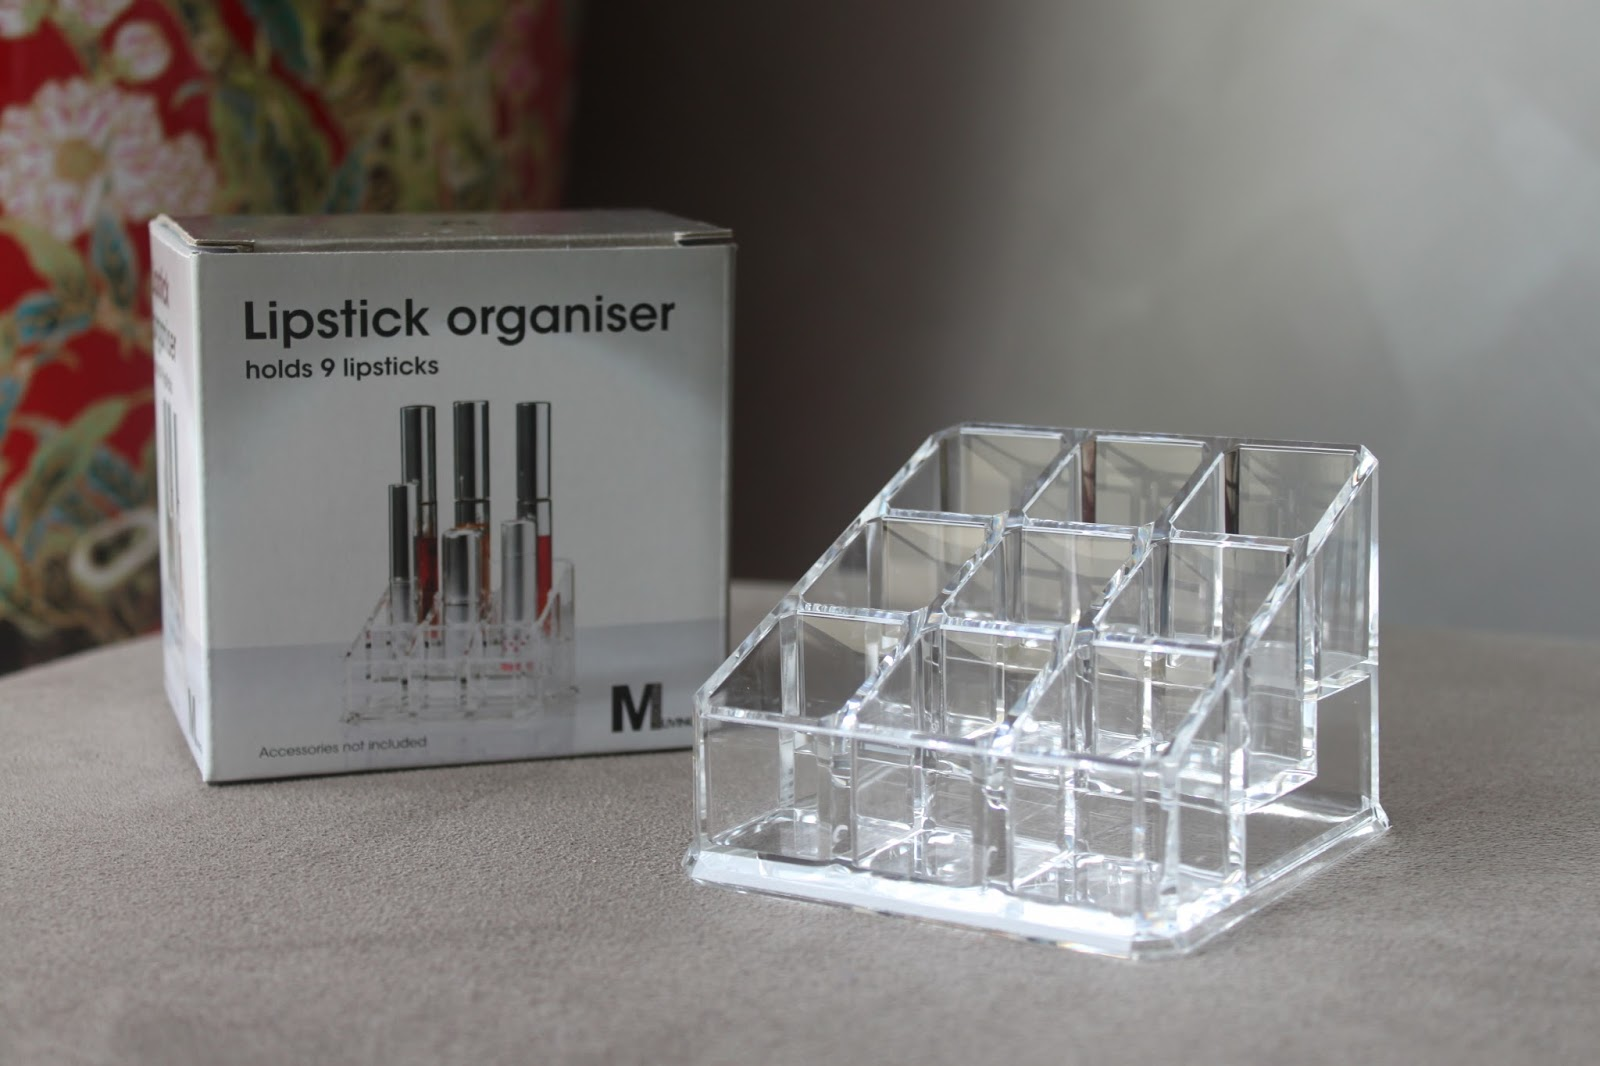 ... collection of beauty storage products at very affordable prices - this  little lipstick organiser set me back about $7.00 (which is half the price  then ...